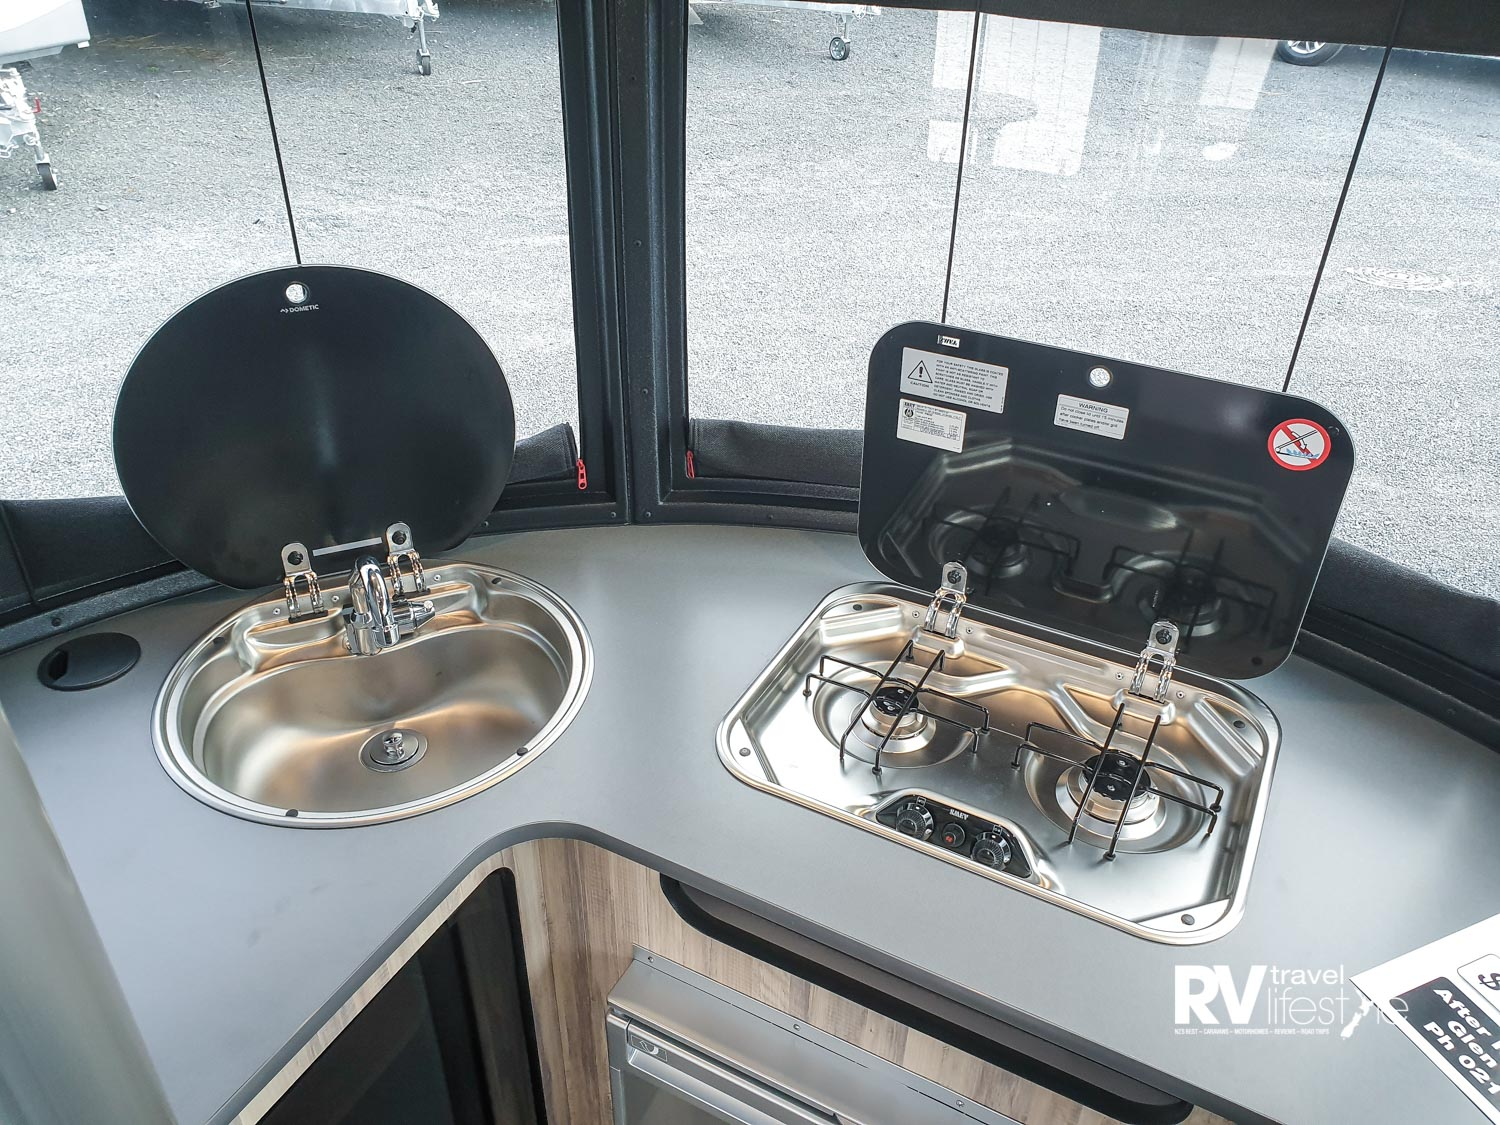 Nifty kitchen bench, sink and two-burner gas hob for cooking, both stainless steel with covers for extra preparation space. Note the curved front windows, blinds unzip and roll down